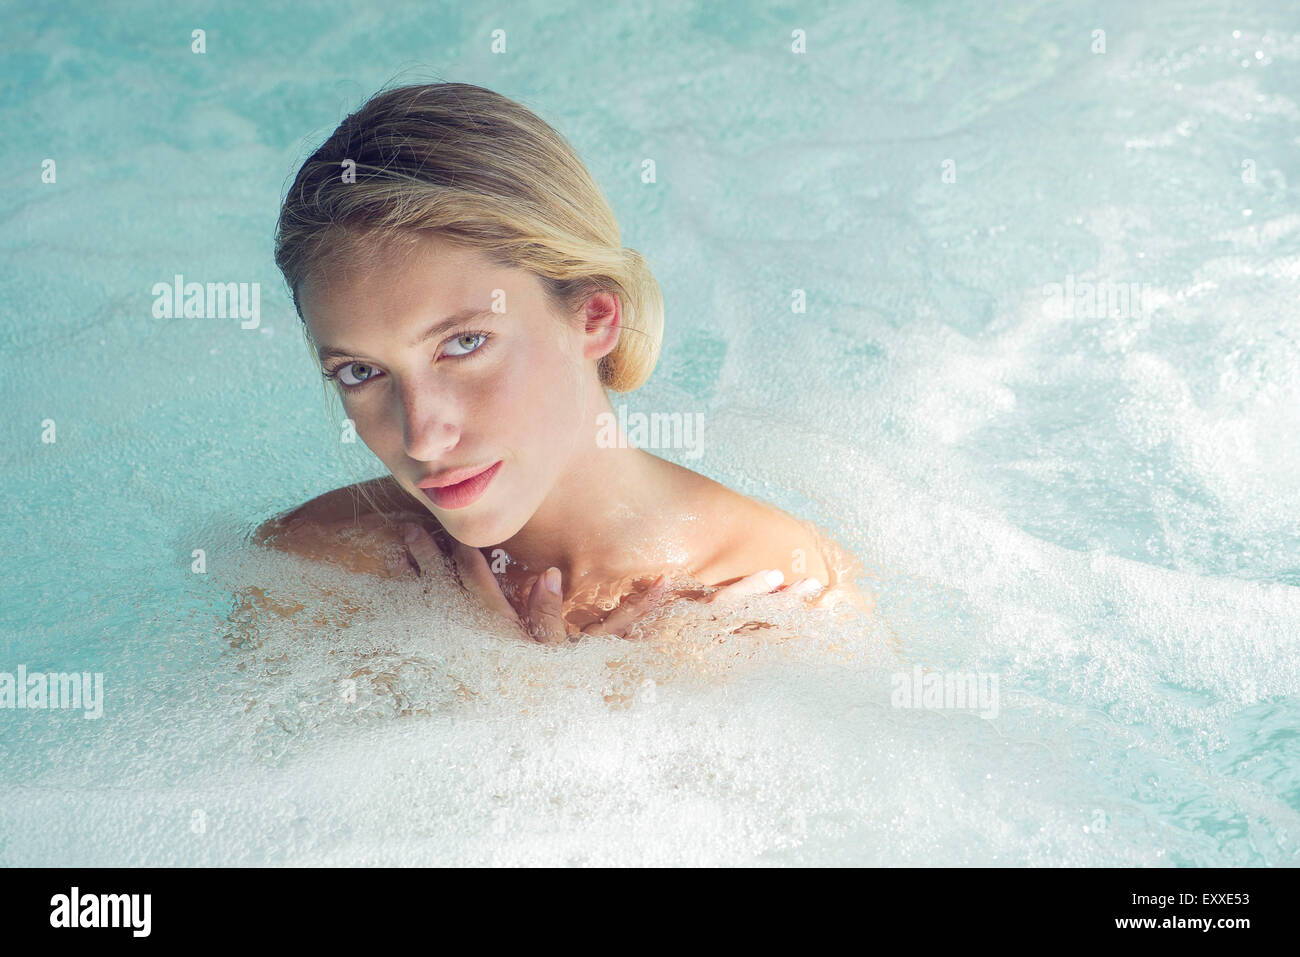 Woman soaking in spa pool - Stock Image